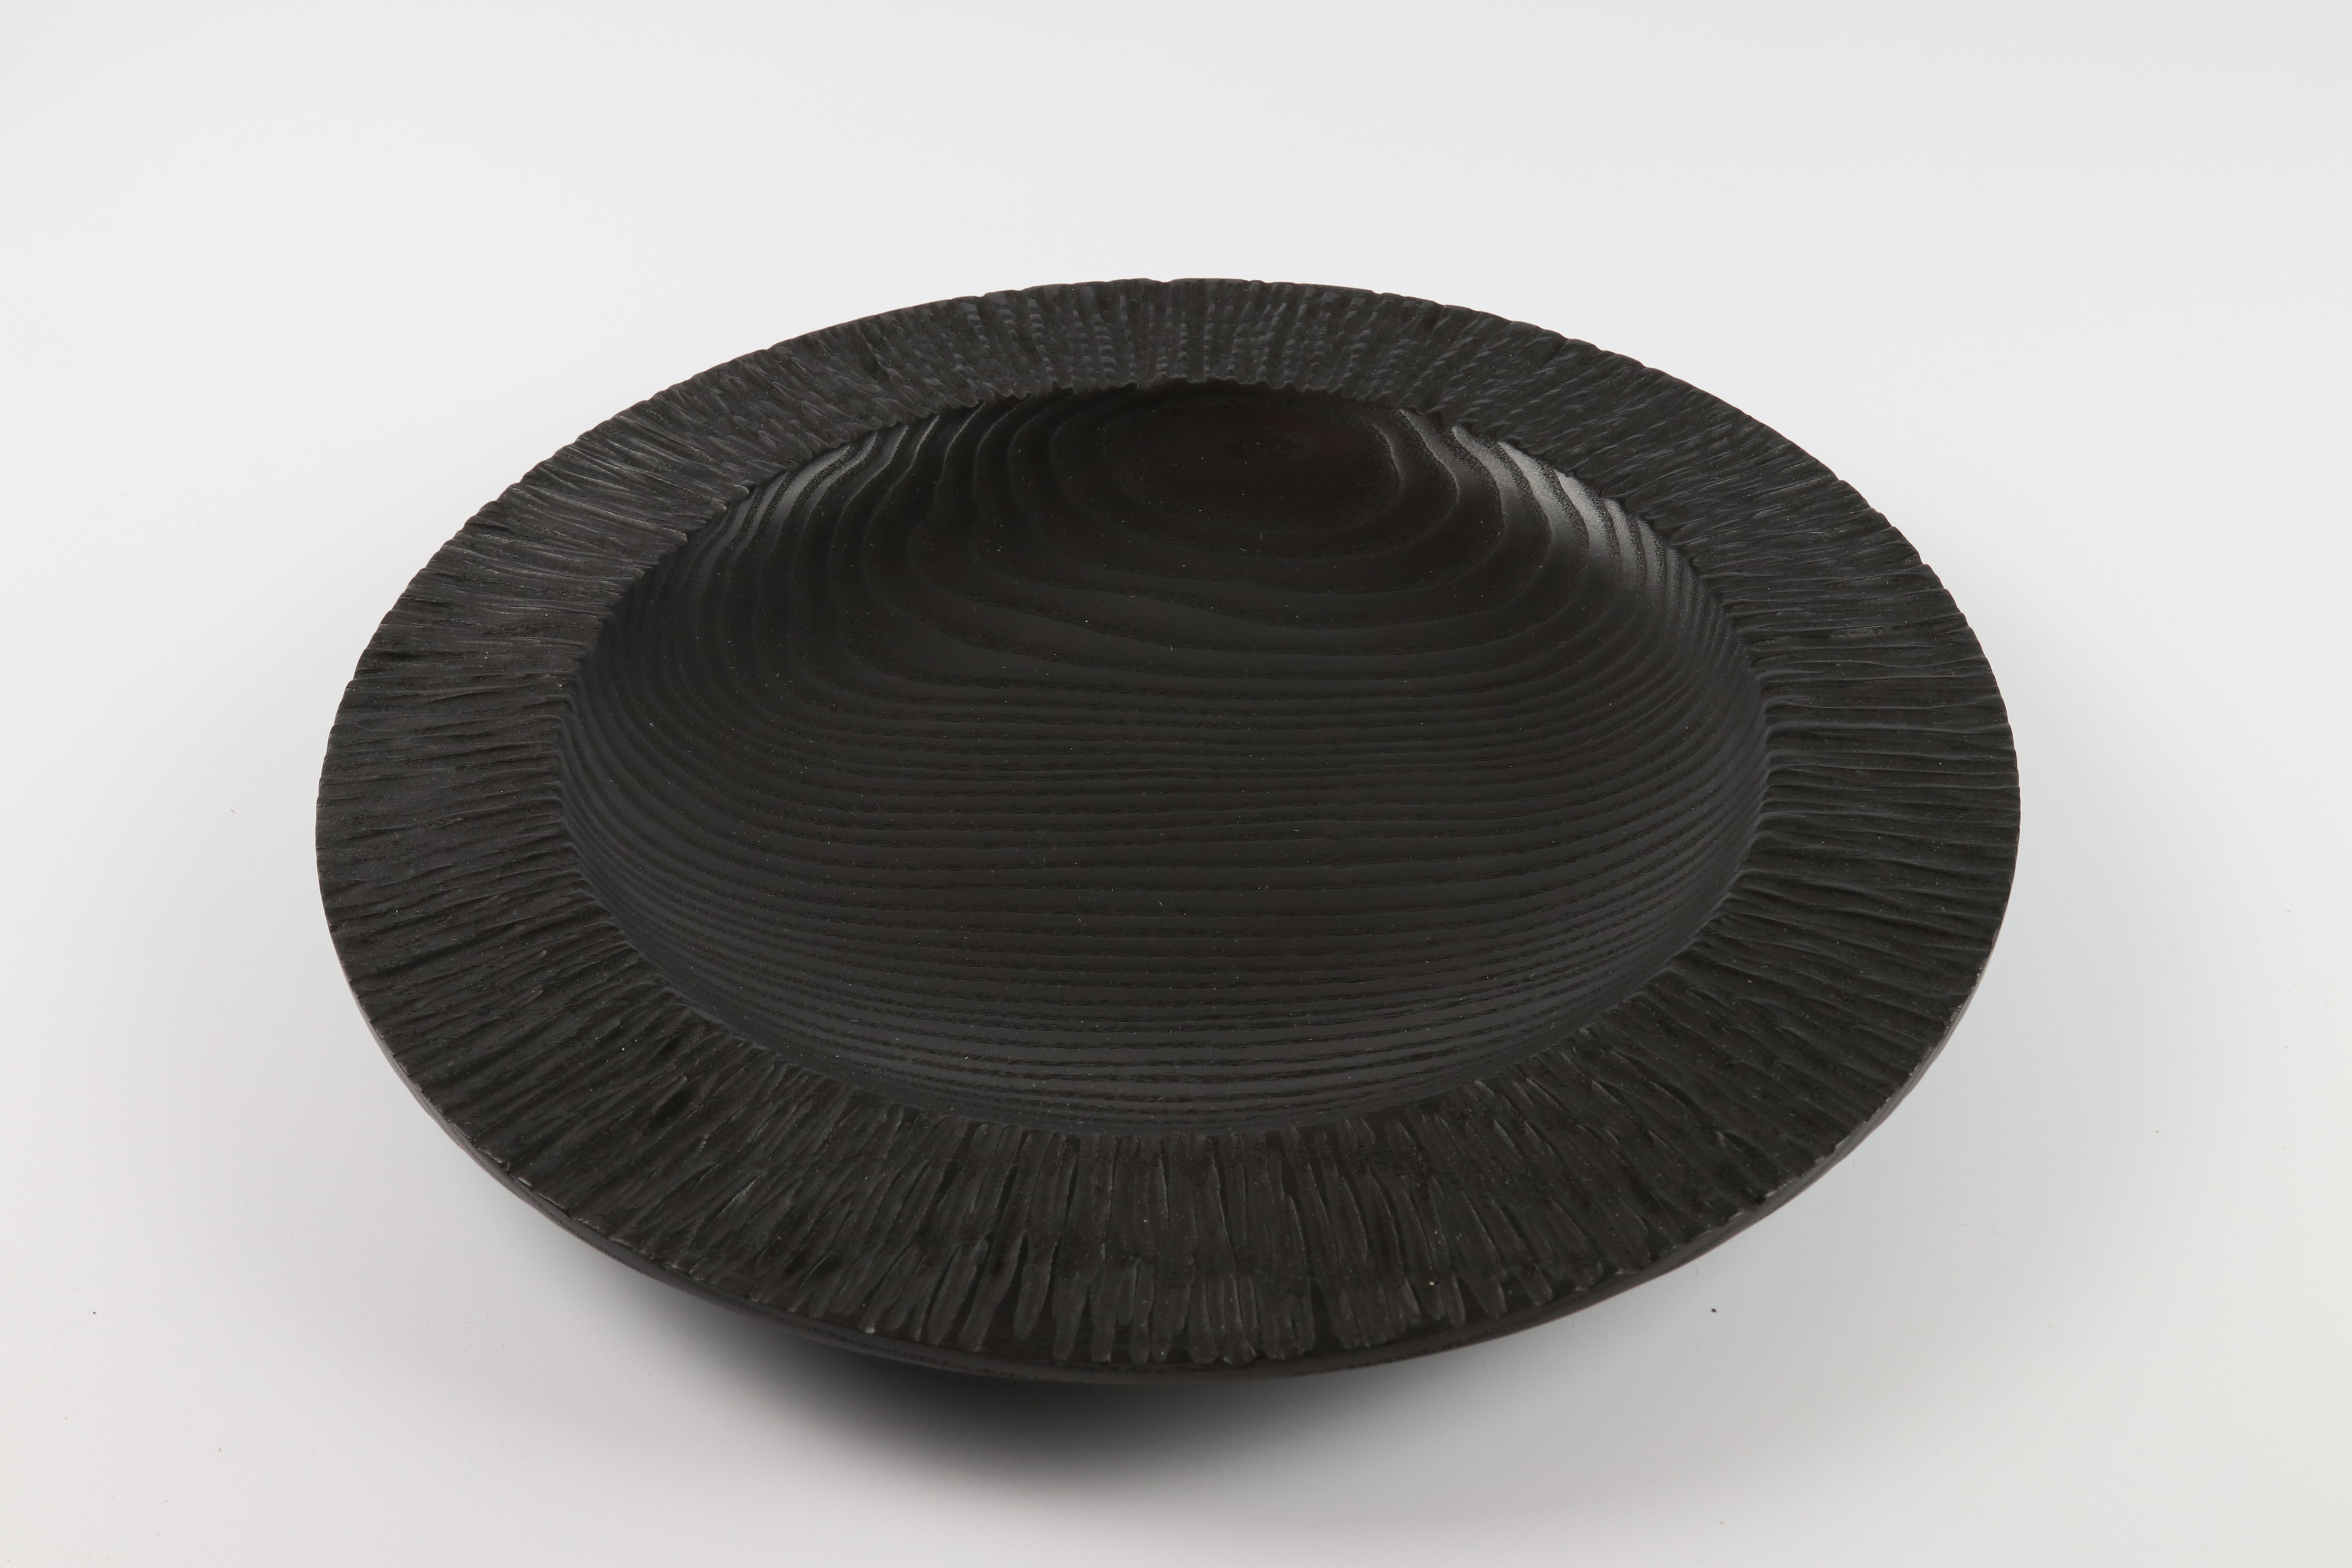 Lot 76 - Merryll Saylan (USA) caarved and coloured ash platter 4x35cm. Signed